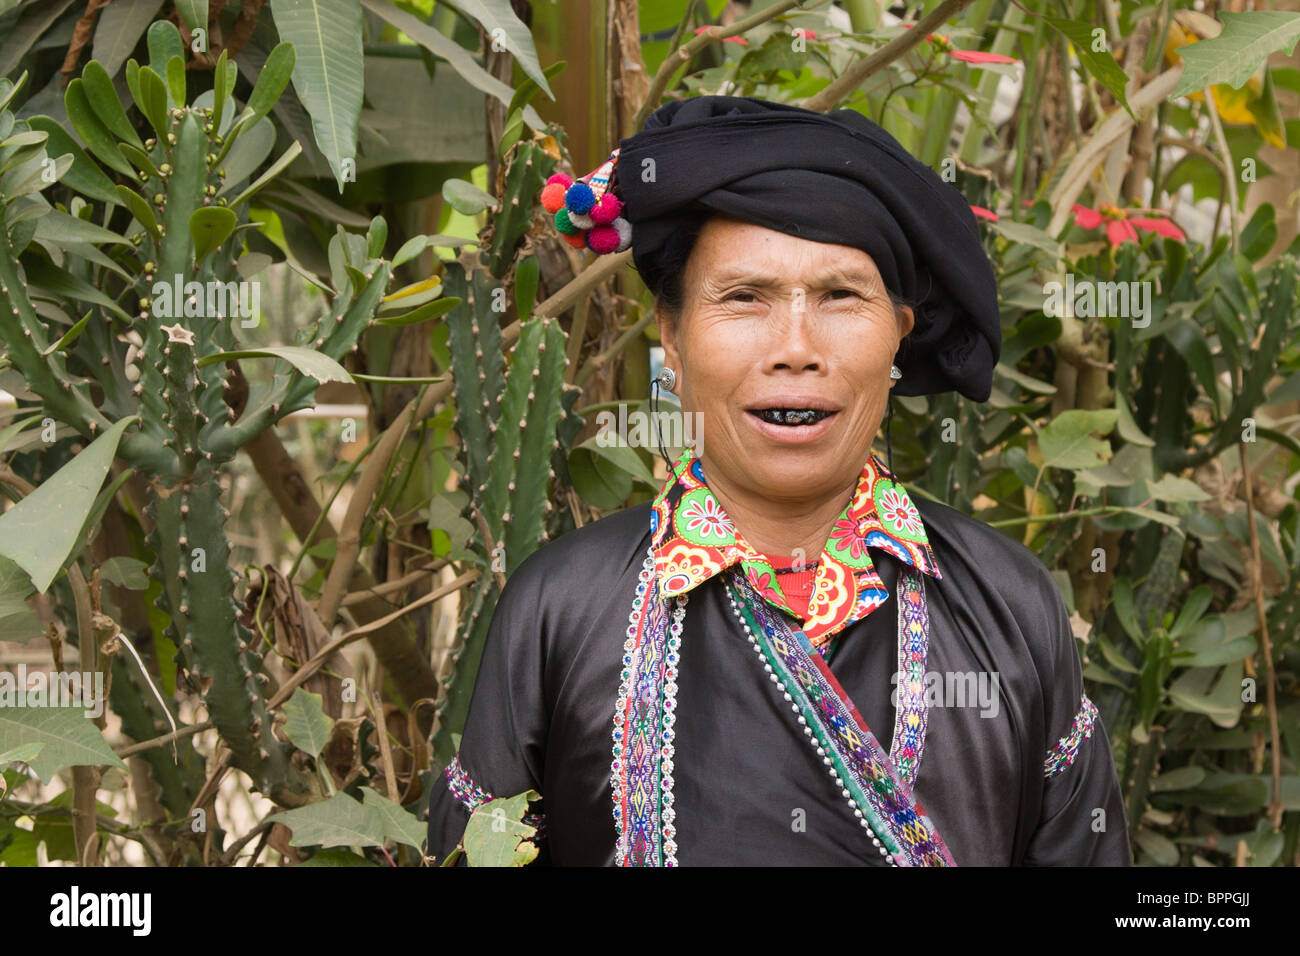 Photograph of a Lu minority wearing traditional clothing with her teeth blackened woman in front of a cactus Stock Photo